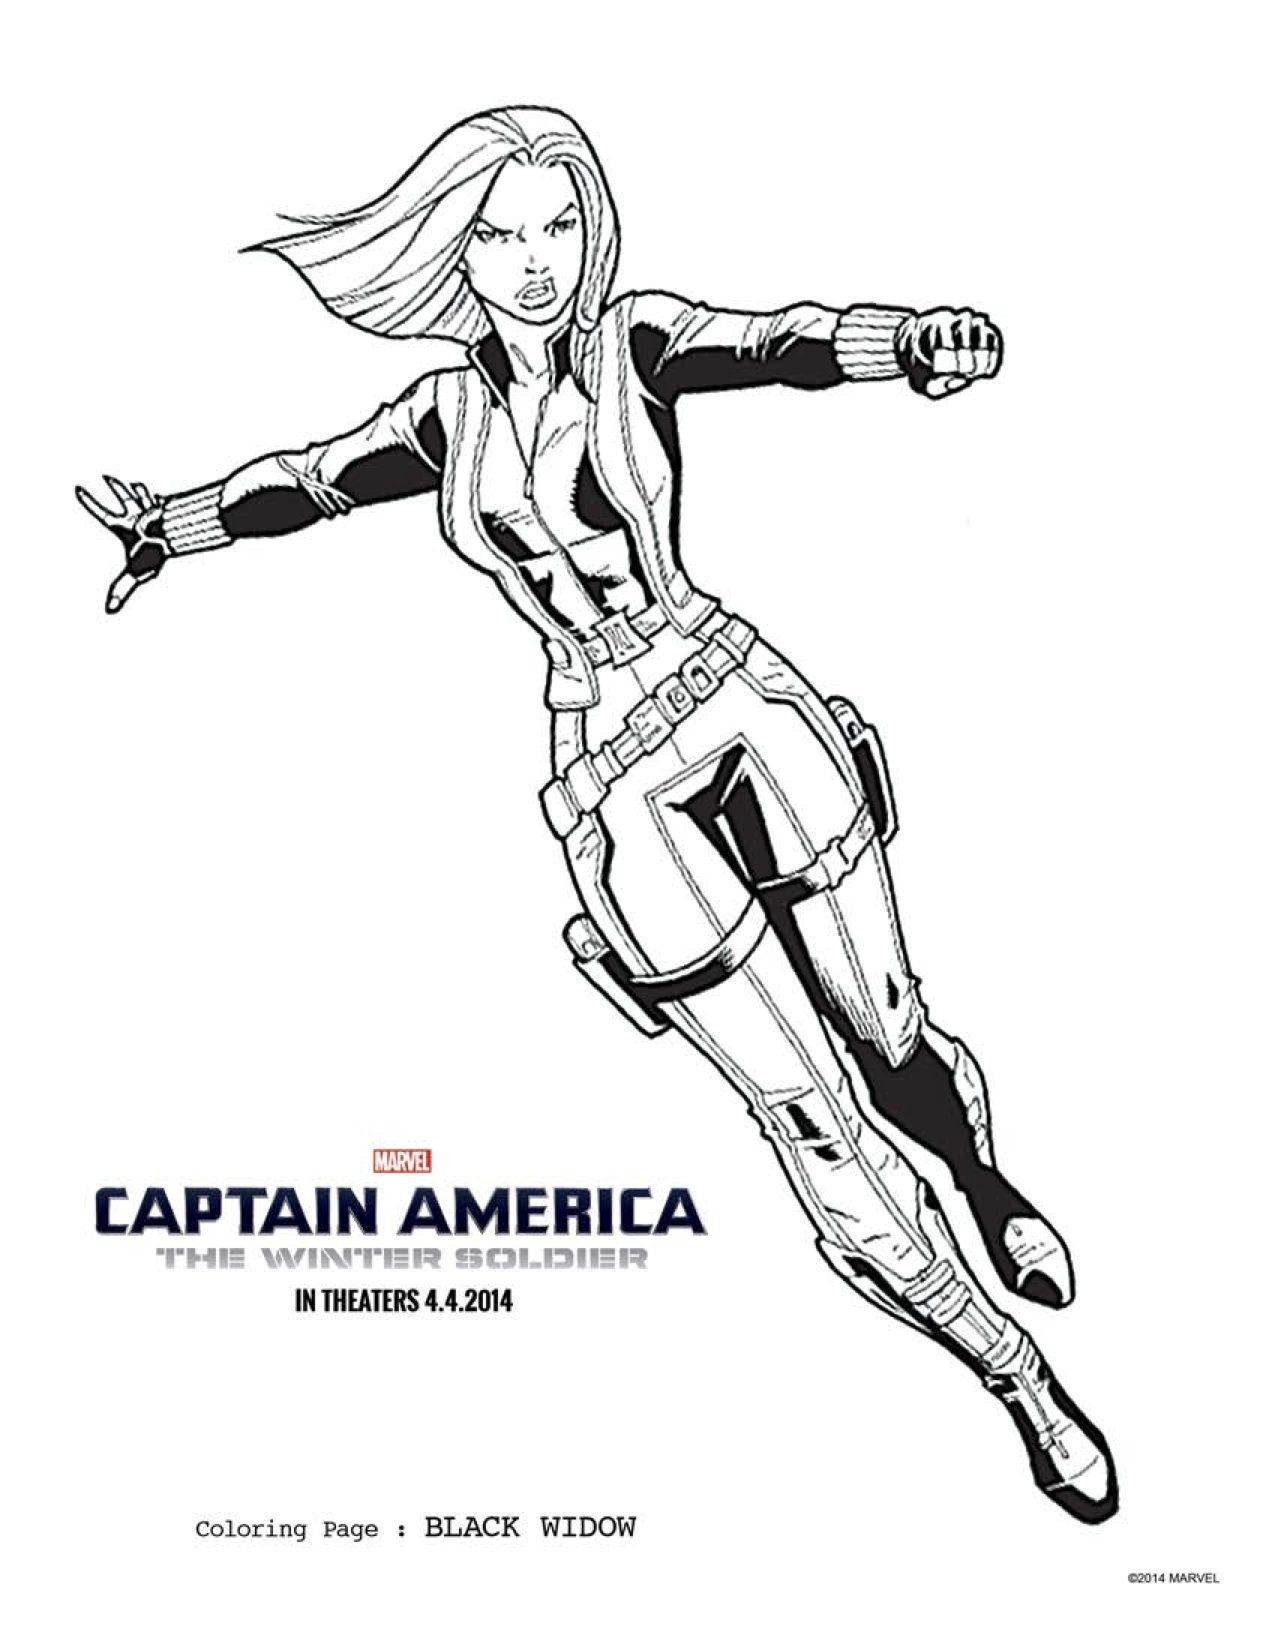 2 captain america the winter soldier coloring sheets to keep everyone occupied until april 4th captainamerica black widow